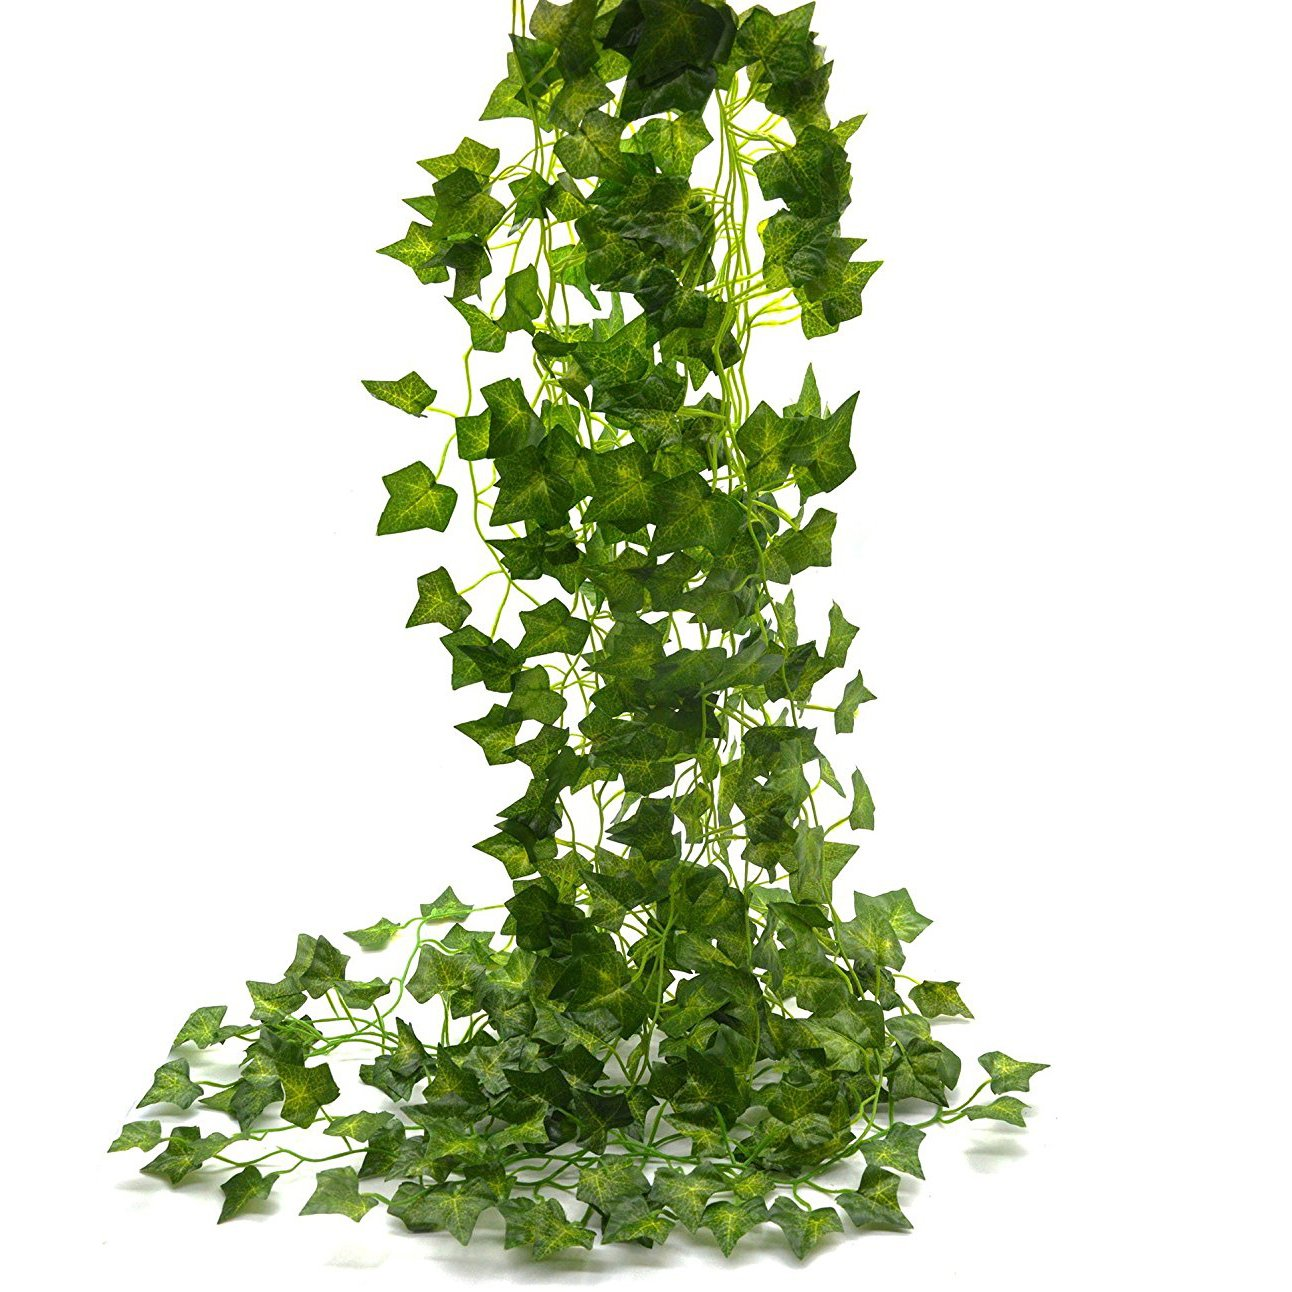 Amazon aosler movie batman poison ivy wig dark red long curly beebel ivy leaves 85ft 12 strands artificial fake leaves hanging vines plant leaves garland home garden solutioingenieria Image collections